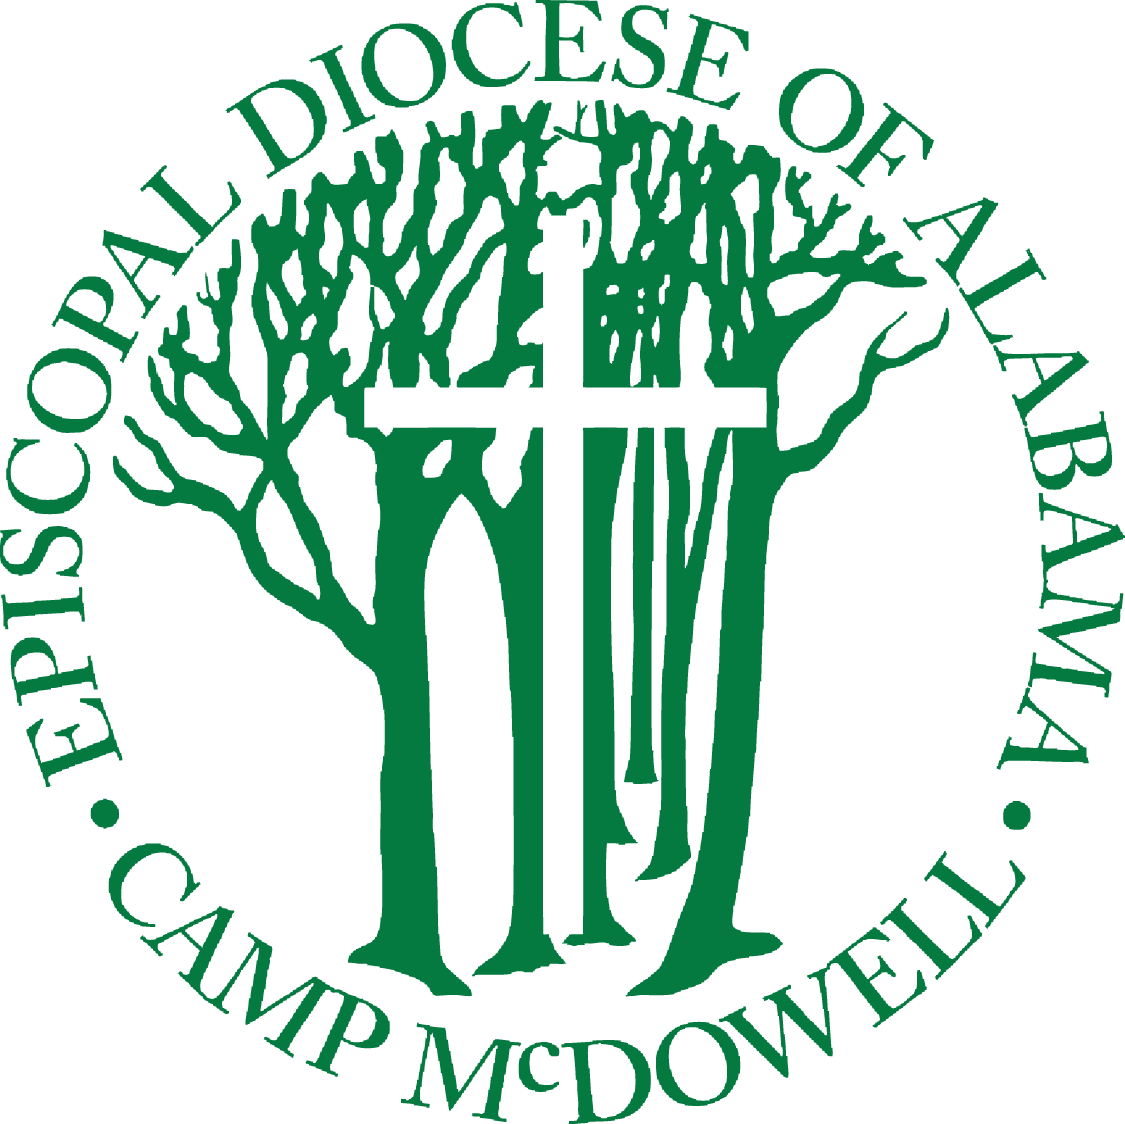 Summer Camp - Camp McDowell